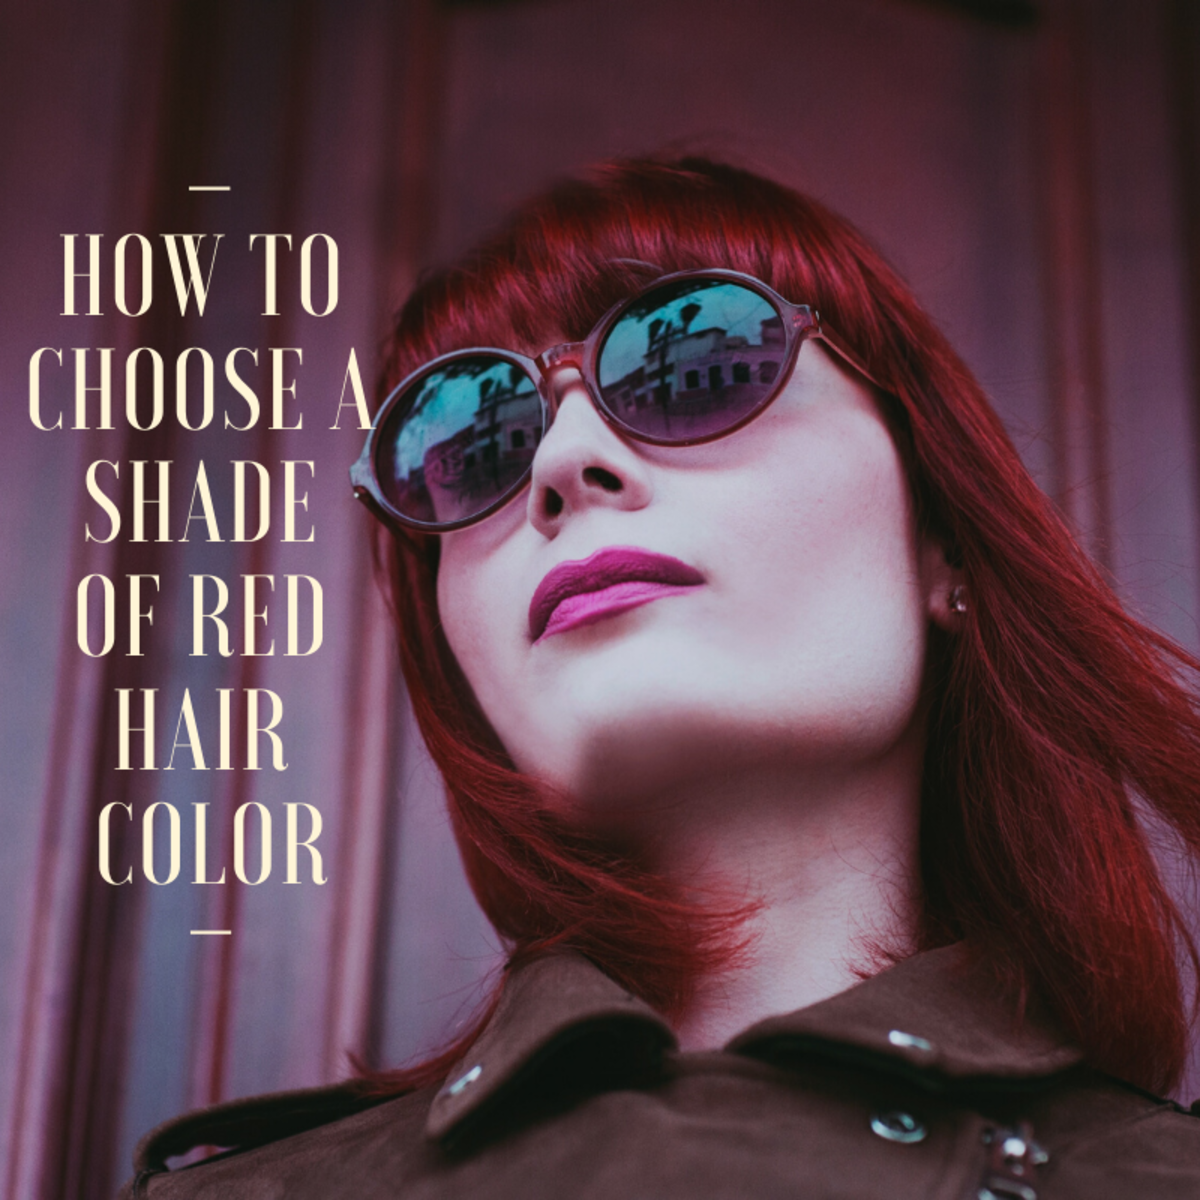 Red hair is so diverse. Learn which shade works best for you.